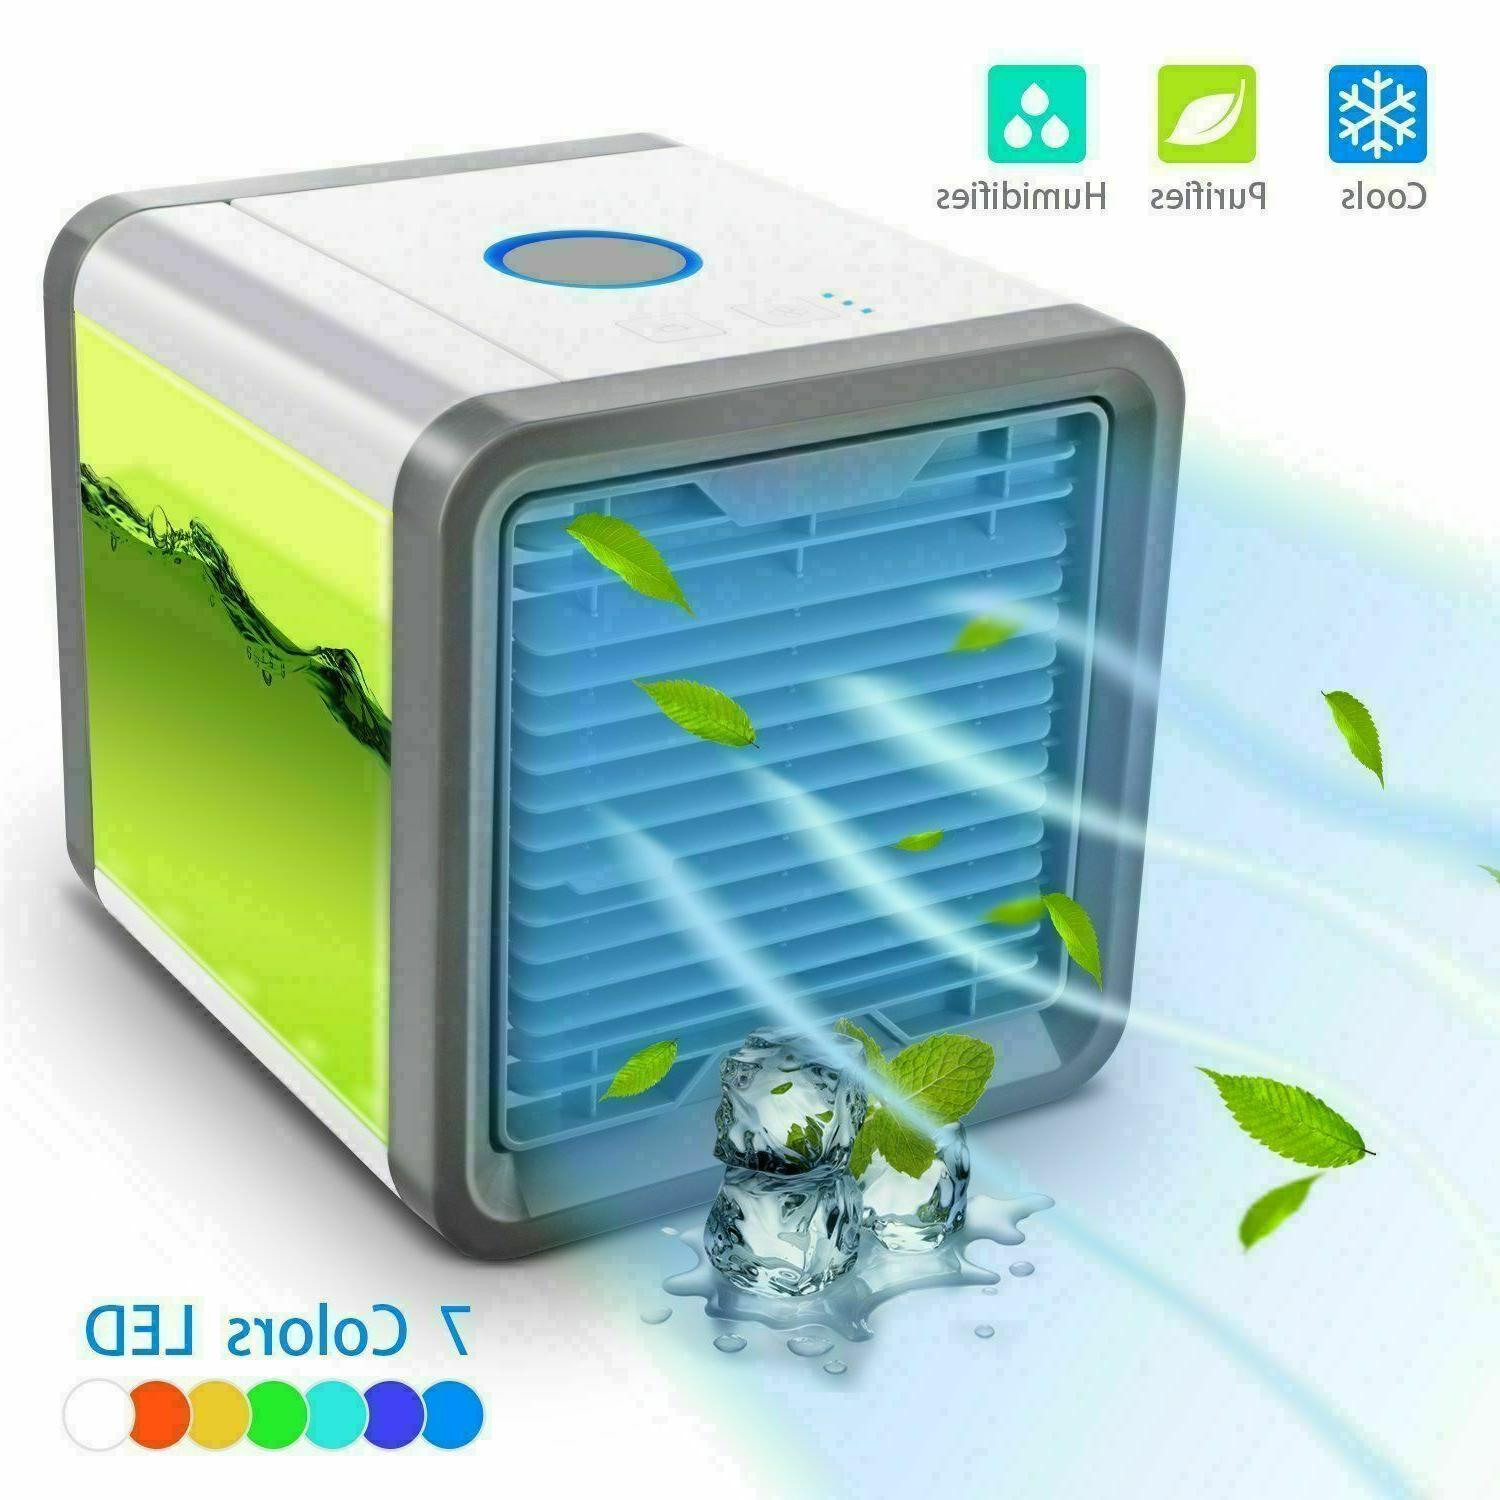 Mini Air Conditioner Cooler Portable Summer Space Artic Fan Humidifier